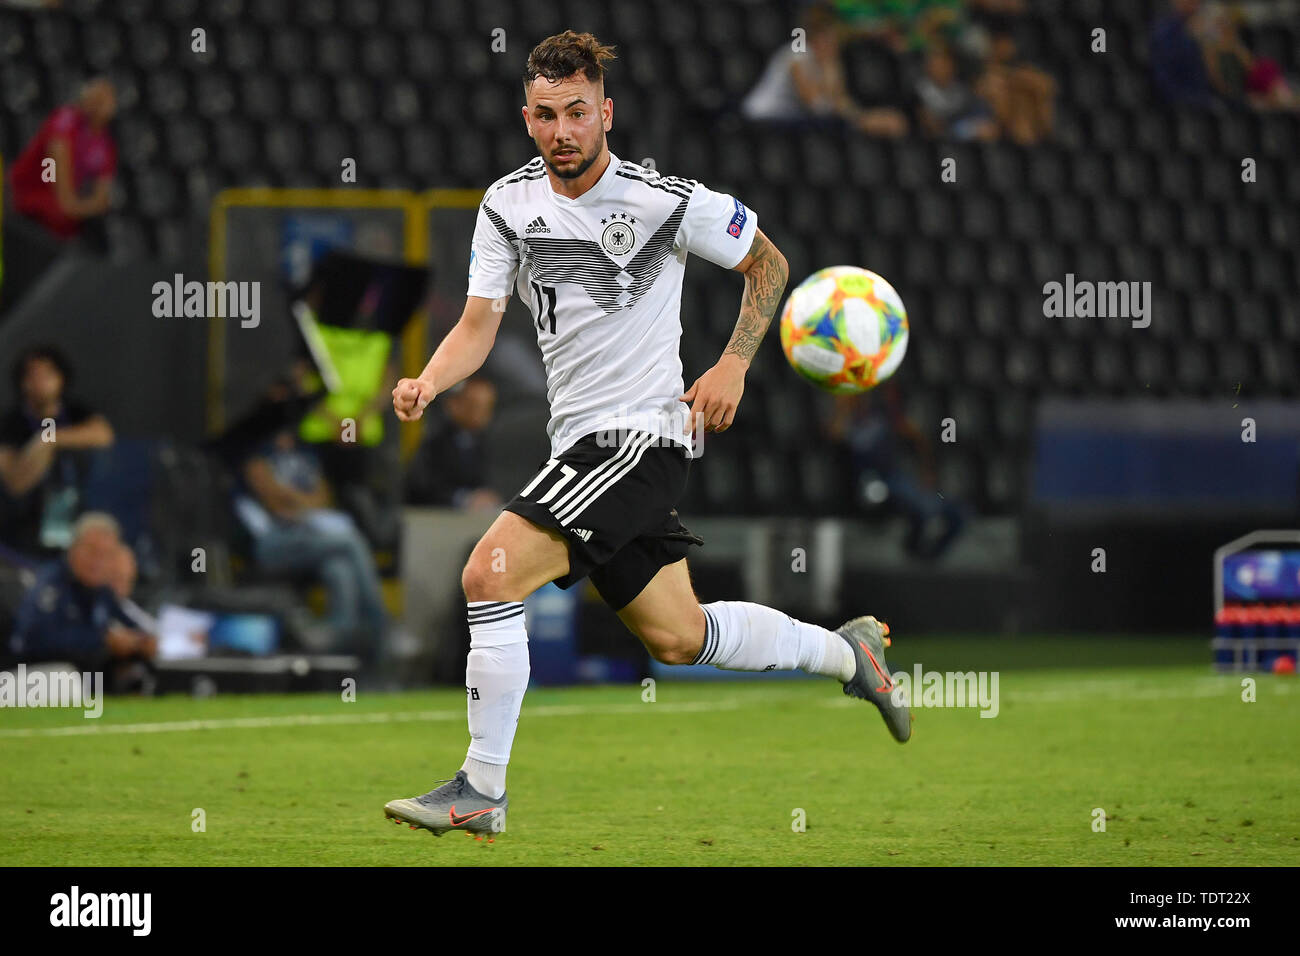 Marco RICHTER (GER), Action, Single Action, Frame, Cut Out, Full Body, Whole Figure. Germany (GER) -Daenemark (DEN) 3-1, on 17.06.2019 Stadio Friuli Udine. Football U-21, UEFA Under21 European Championship in Italy/SanMarino from 16.-30.06.2019. | Usage worldwide - Stock Image